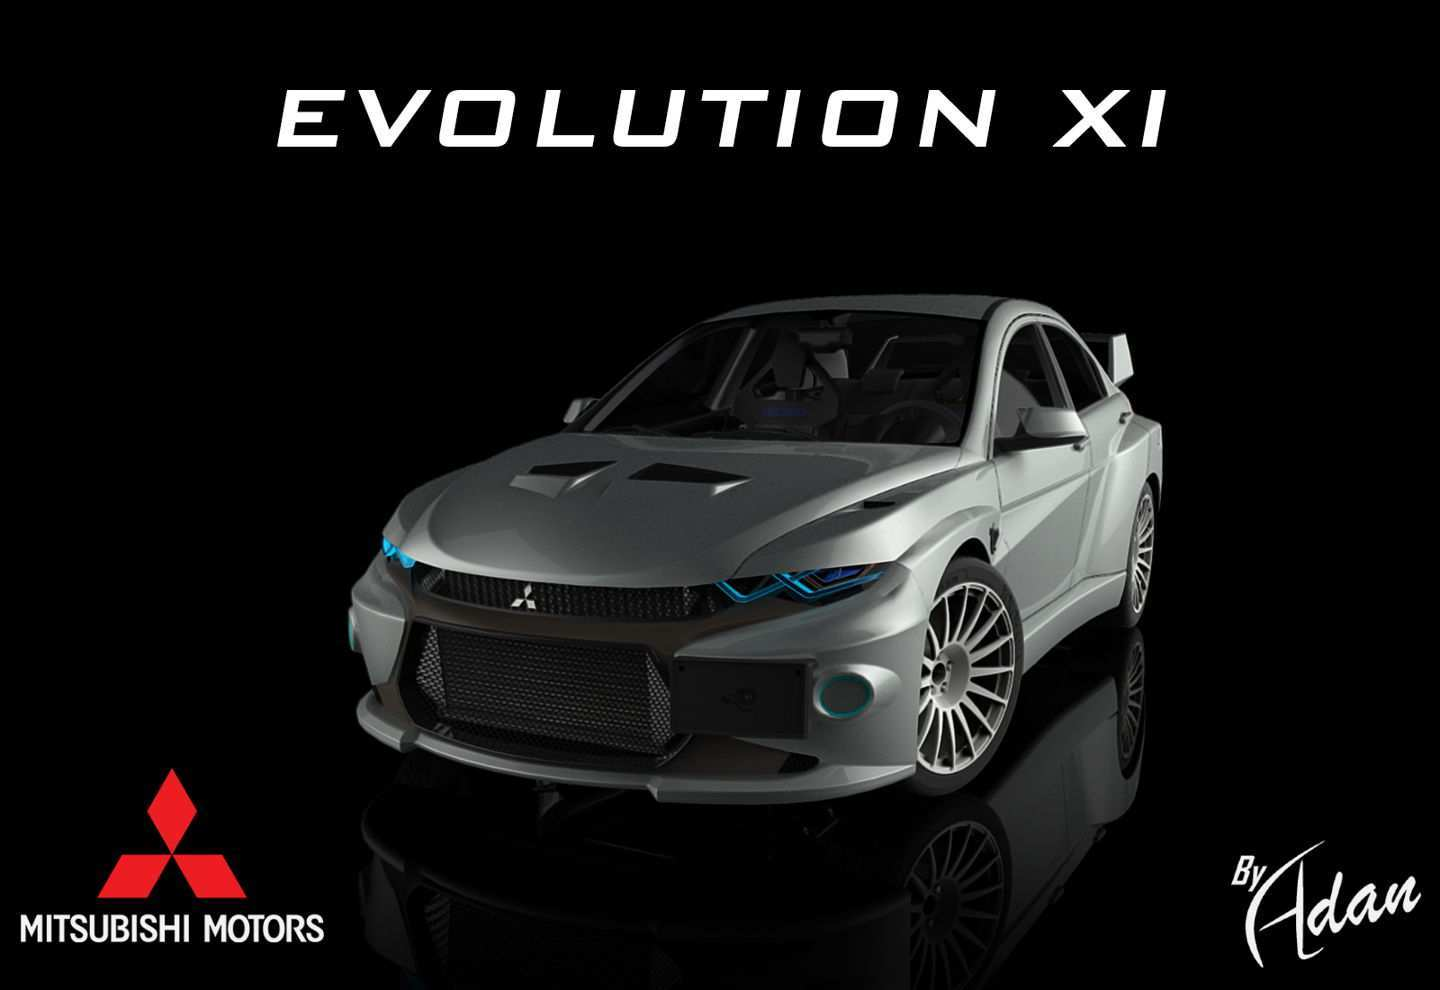 72 The 2020 Mitsubishi Lancer EVO XI Reviews